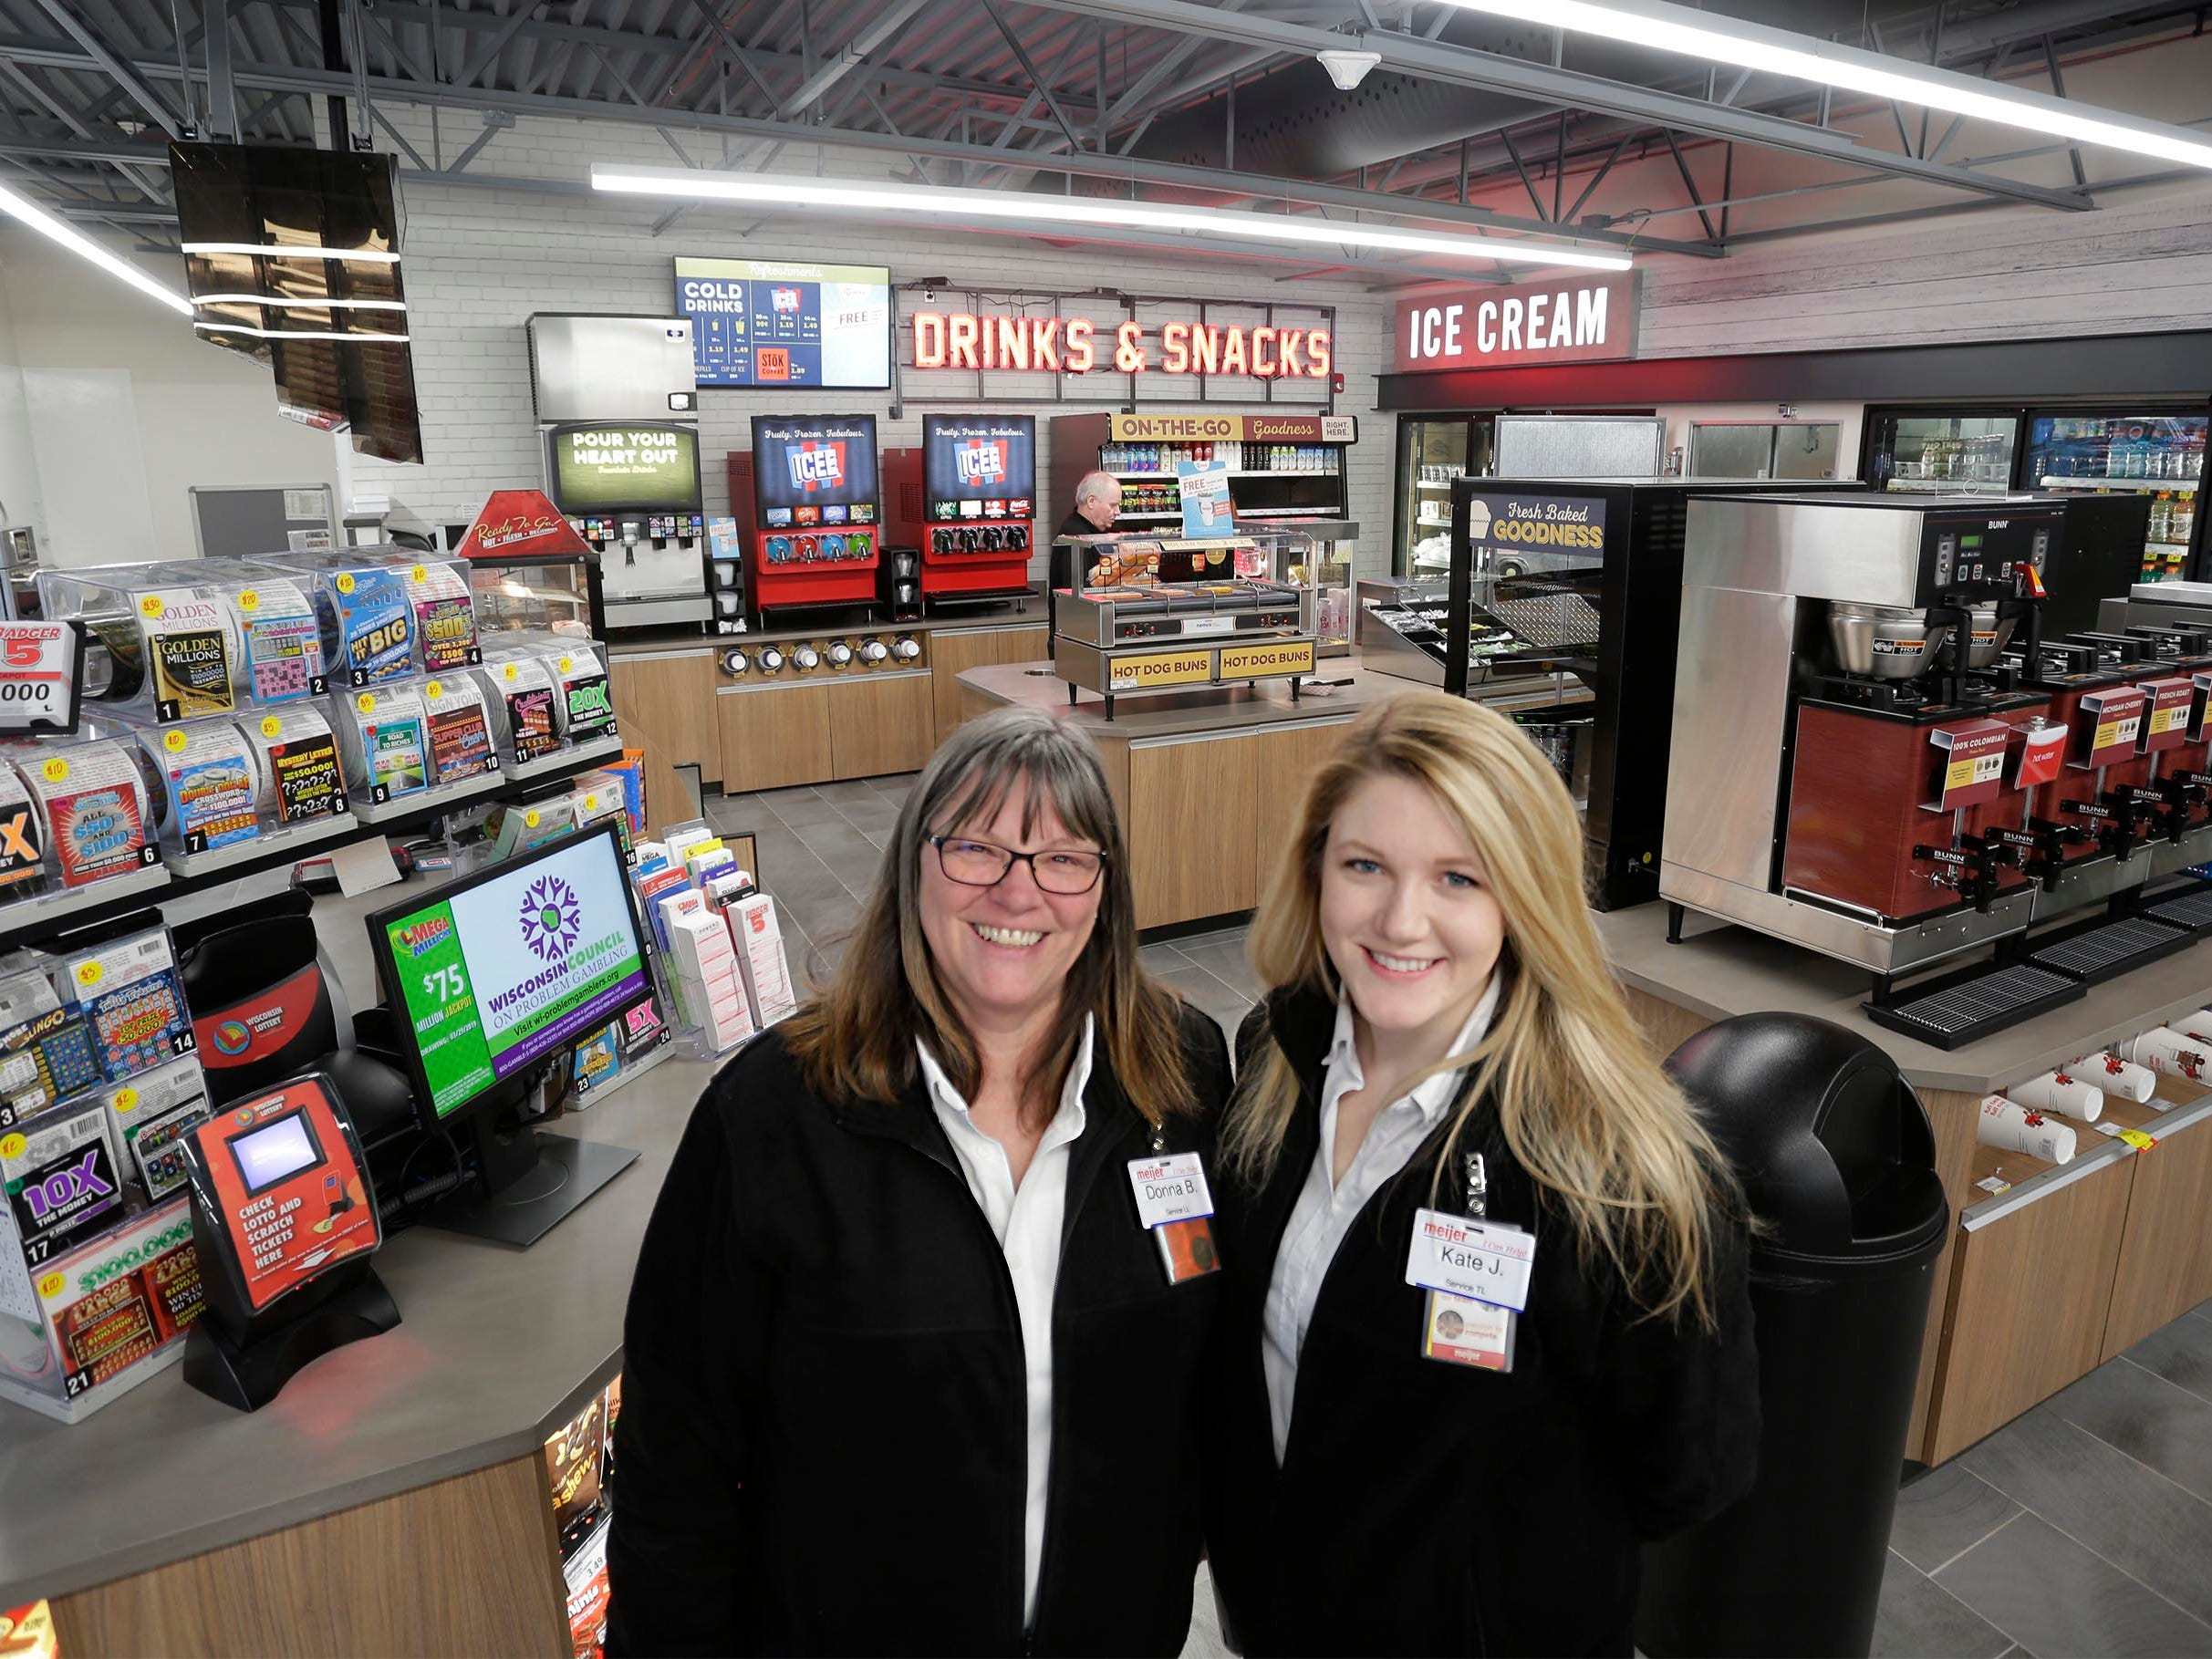 Meijer employees Donna Benzow, left, and Kate Joy pose inside the new Meijer Gas Station store, Thursday, March 28, 2019, in Sheboygan, Wis. The nearby Meijer supercenter is slate to open Sunday, April 28, 2019.